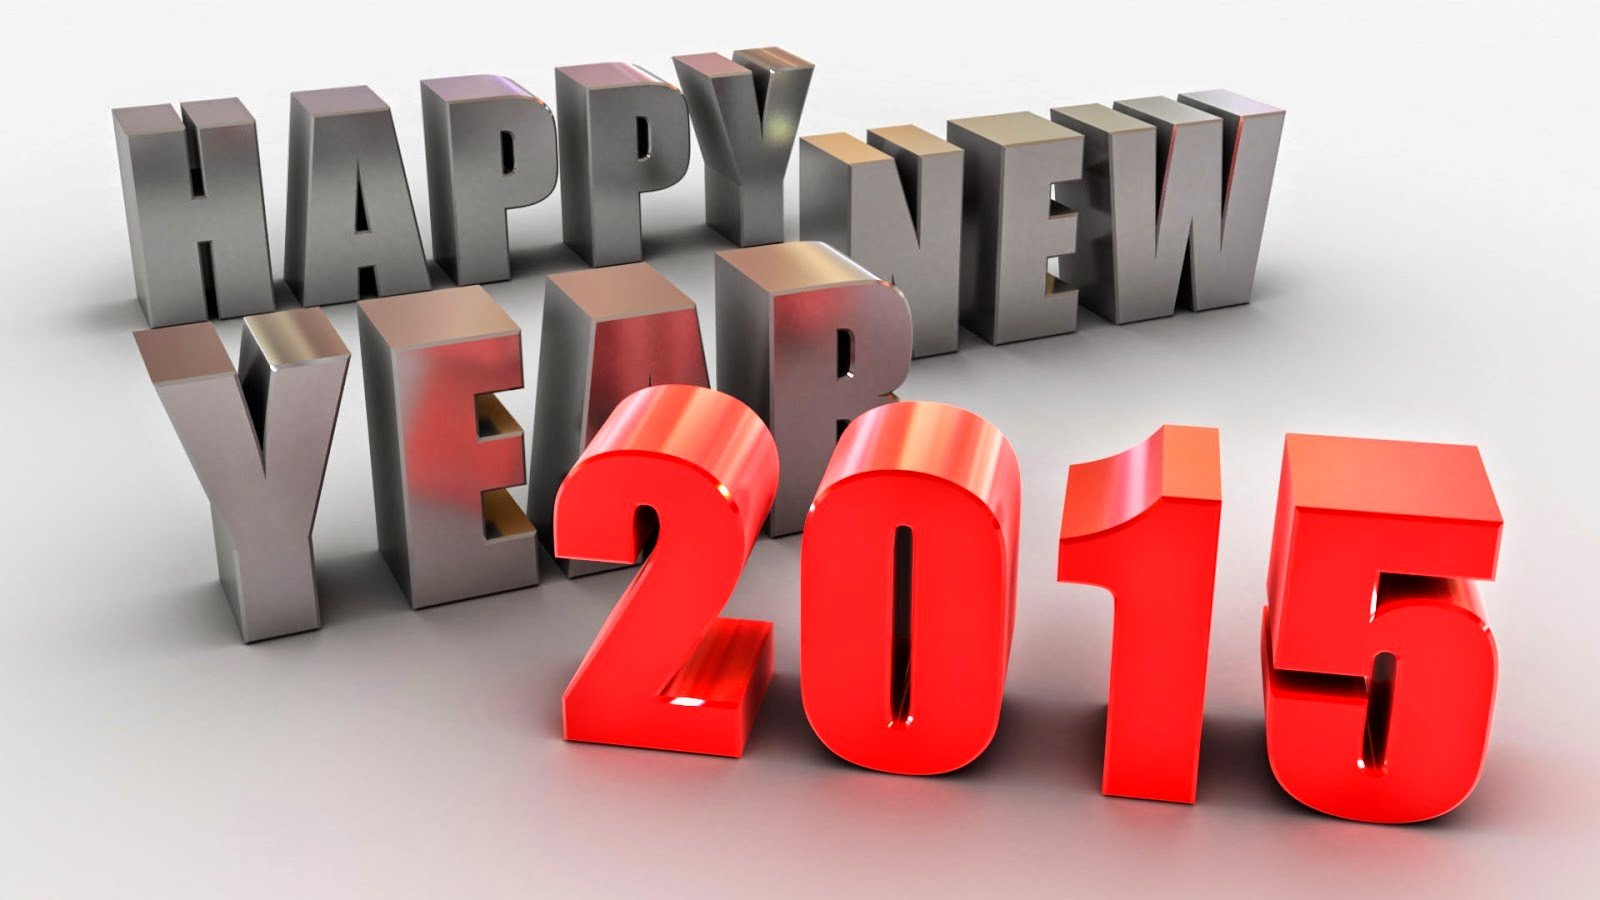 New year wishes messages happy new year 2015 new year wishes messages kristyandbryce Choice Image